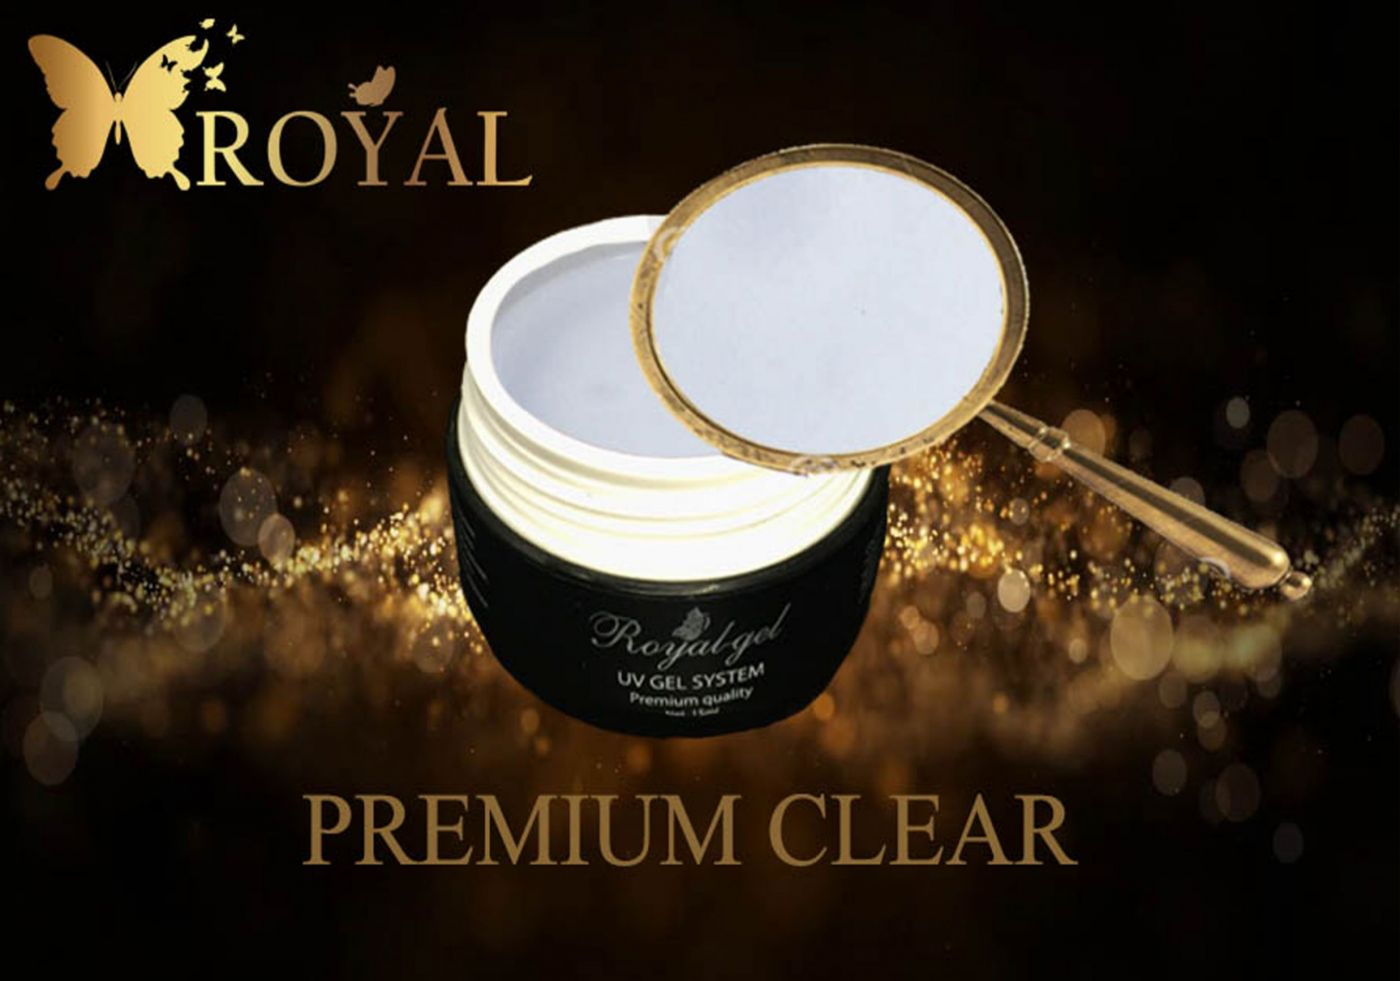 PREMIUM CLEAR ROYAL GEL